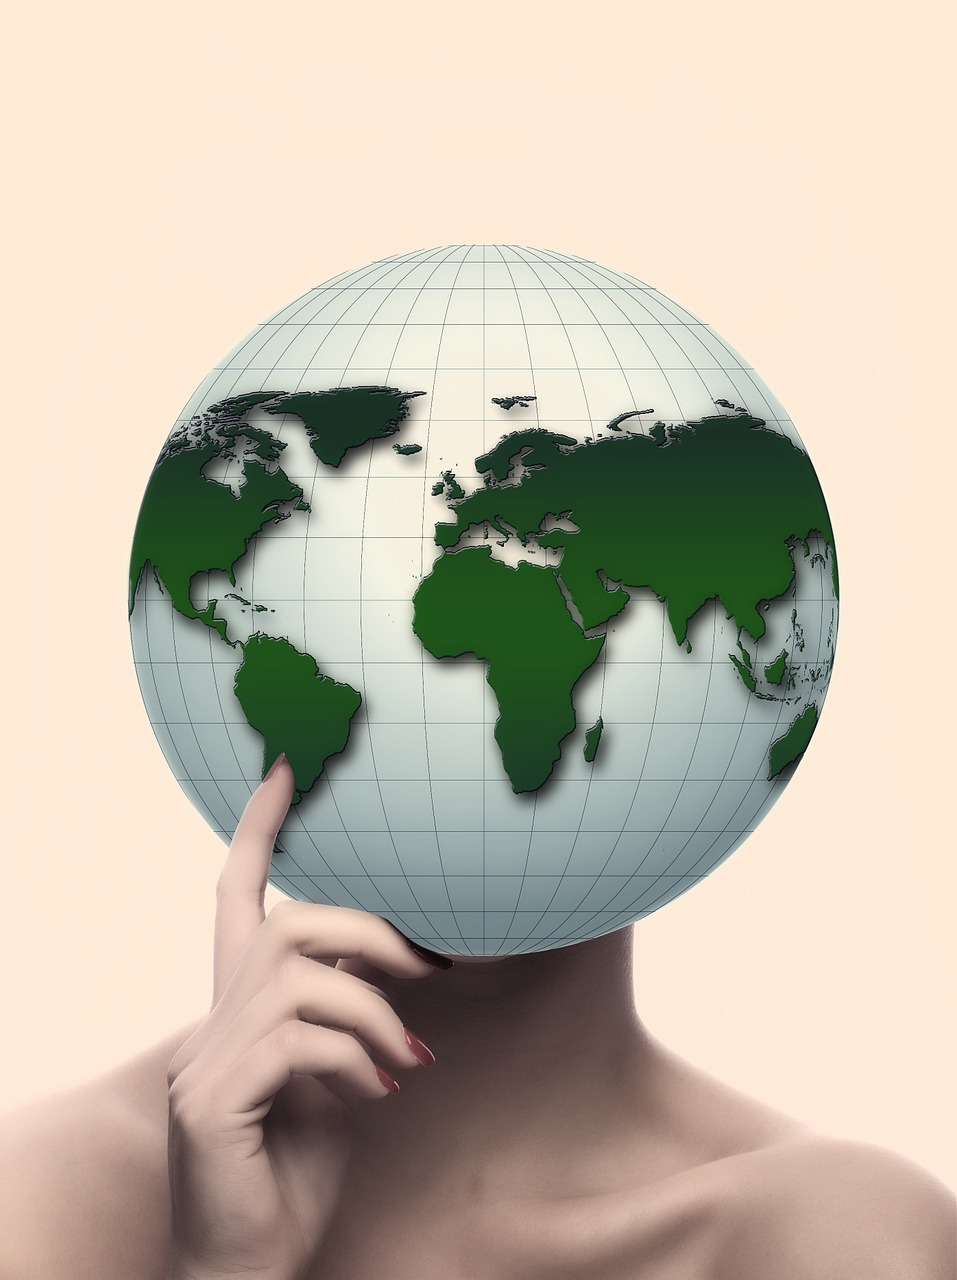 15 Globalization Articles To Support Your Pros And Cons